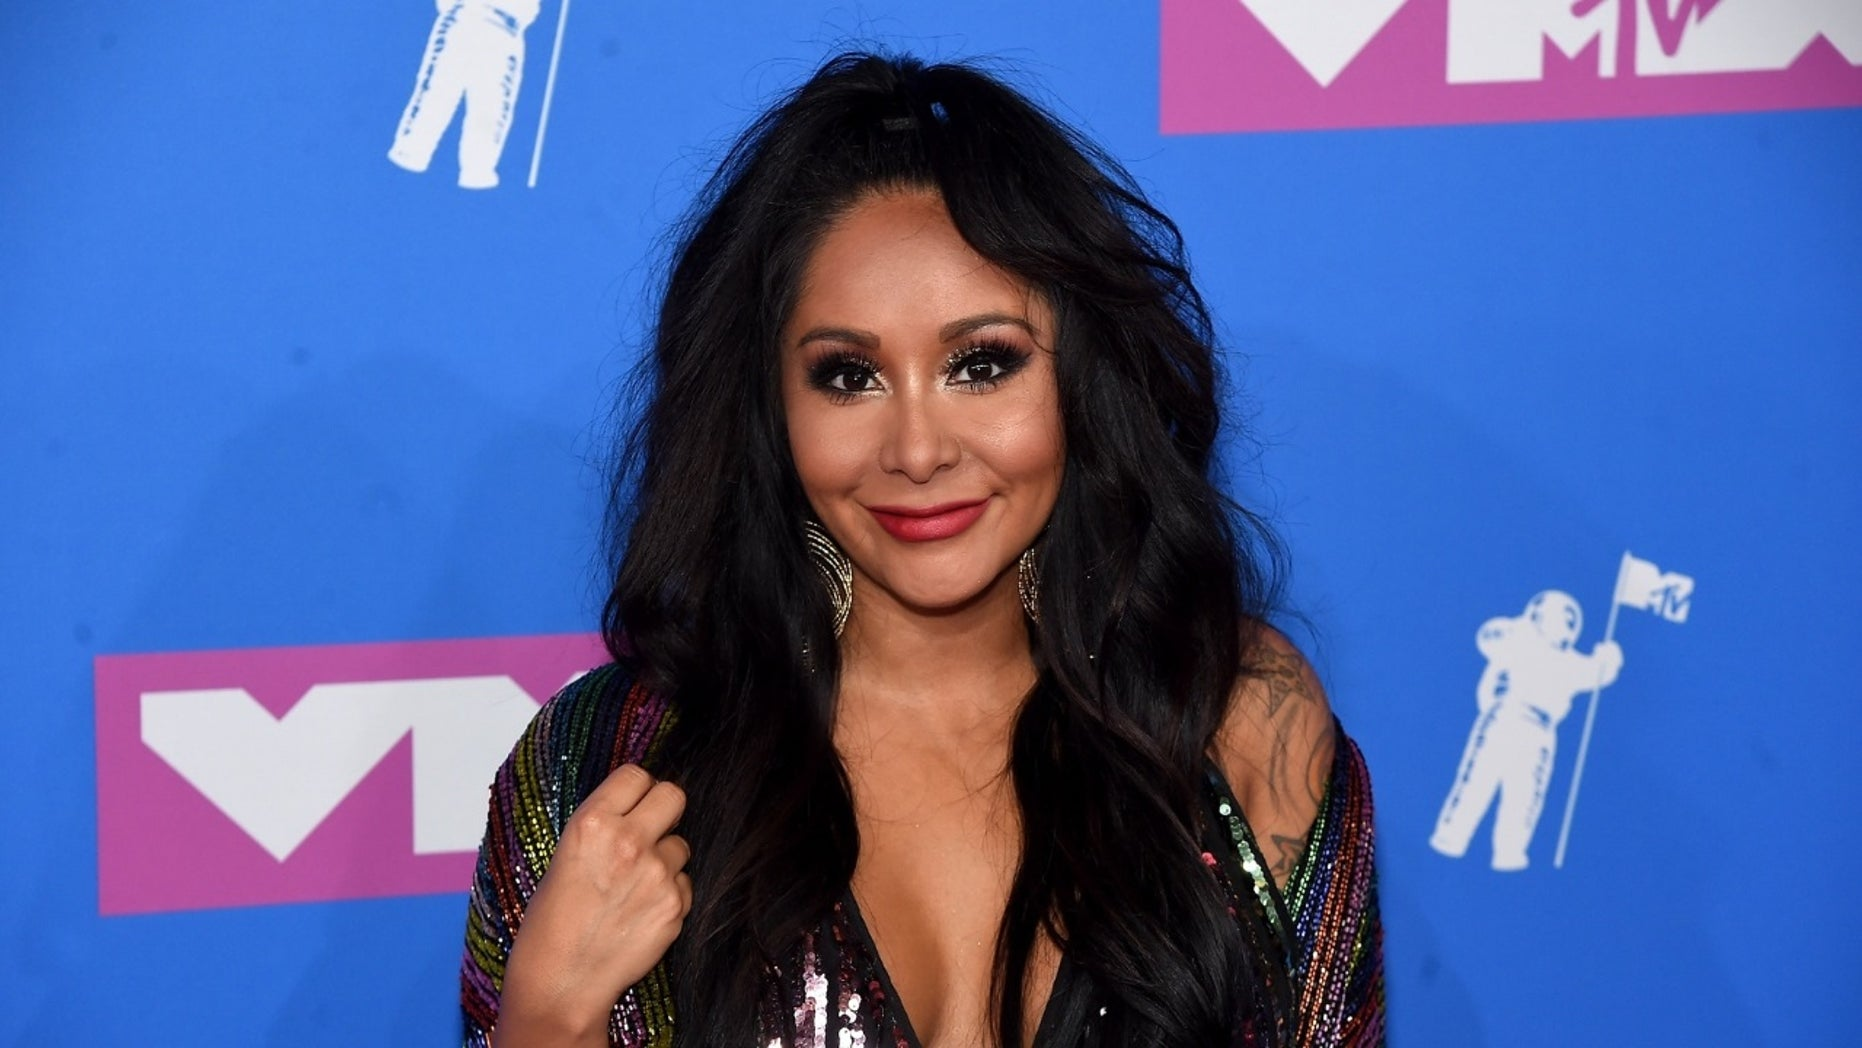 """Nicole """"Snooki"""" Polizzi responded to social media users criticizing her daughter's appearance at a wedding show on Saturday, Sept. 29, 2018."""